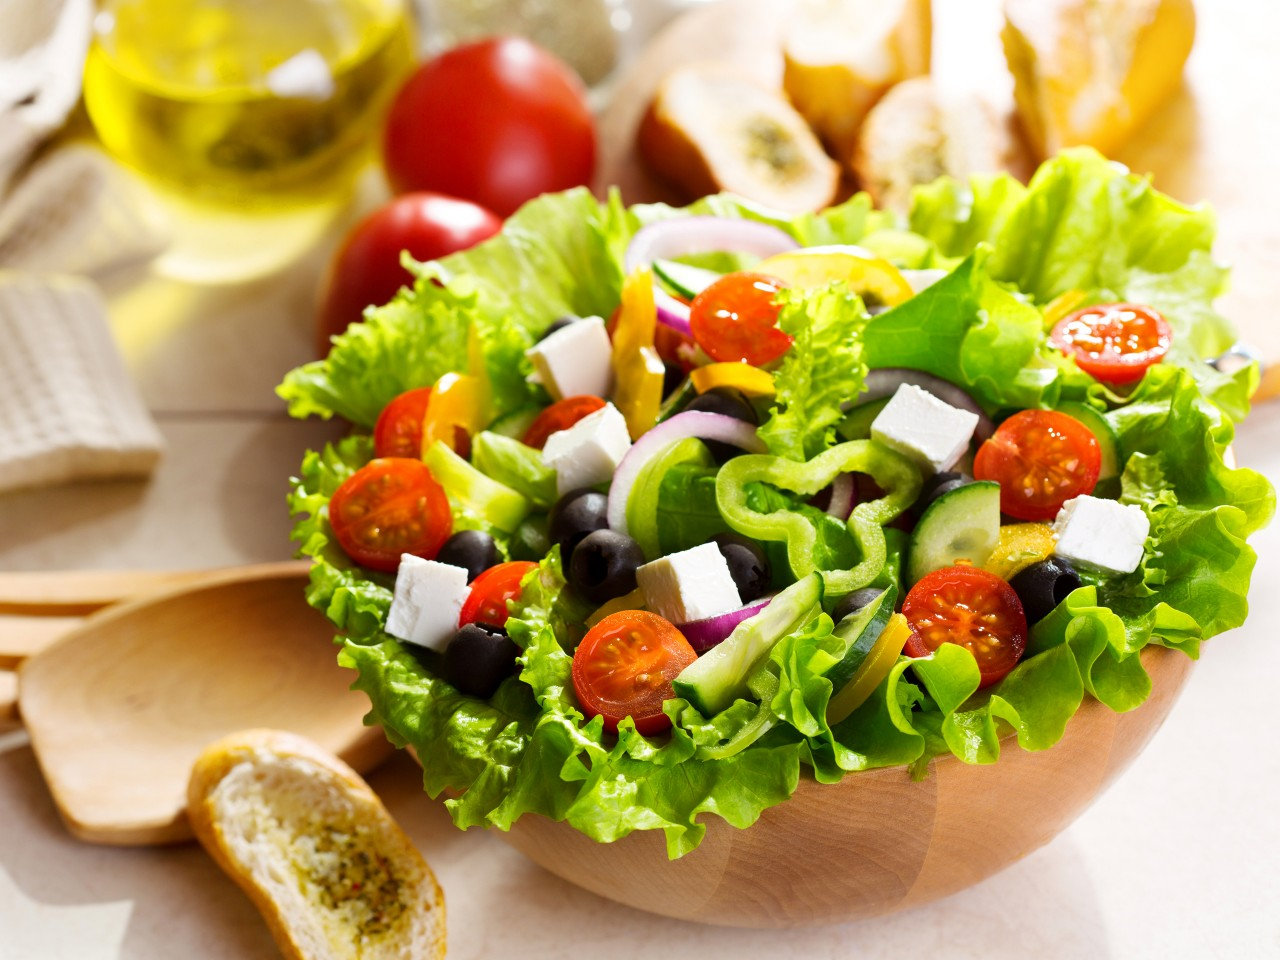 Salad Greek Vegetables Food wallpapers